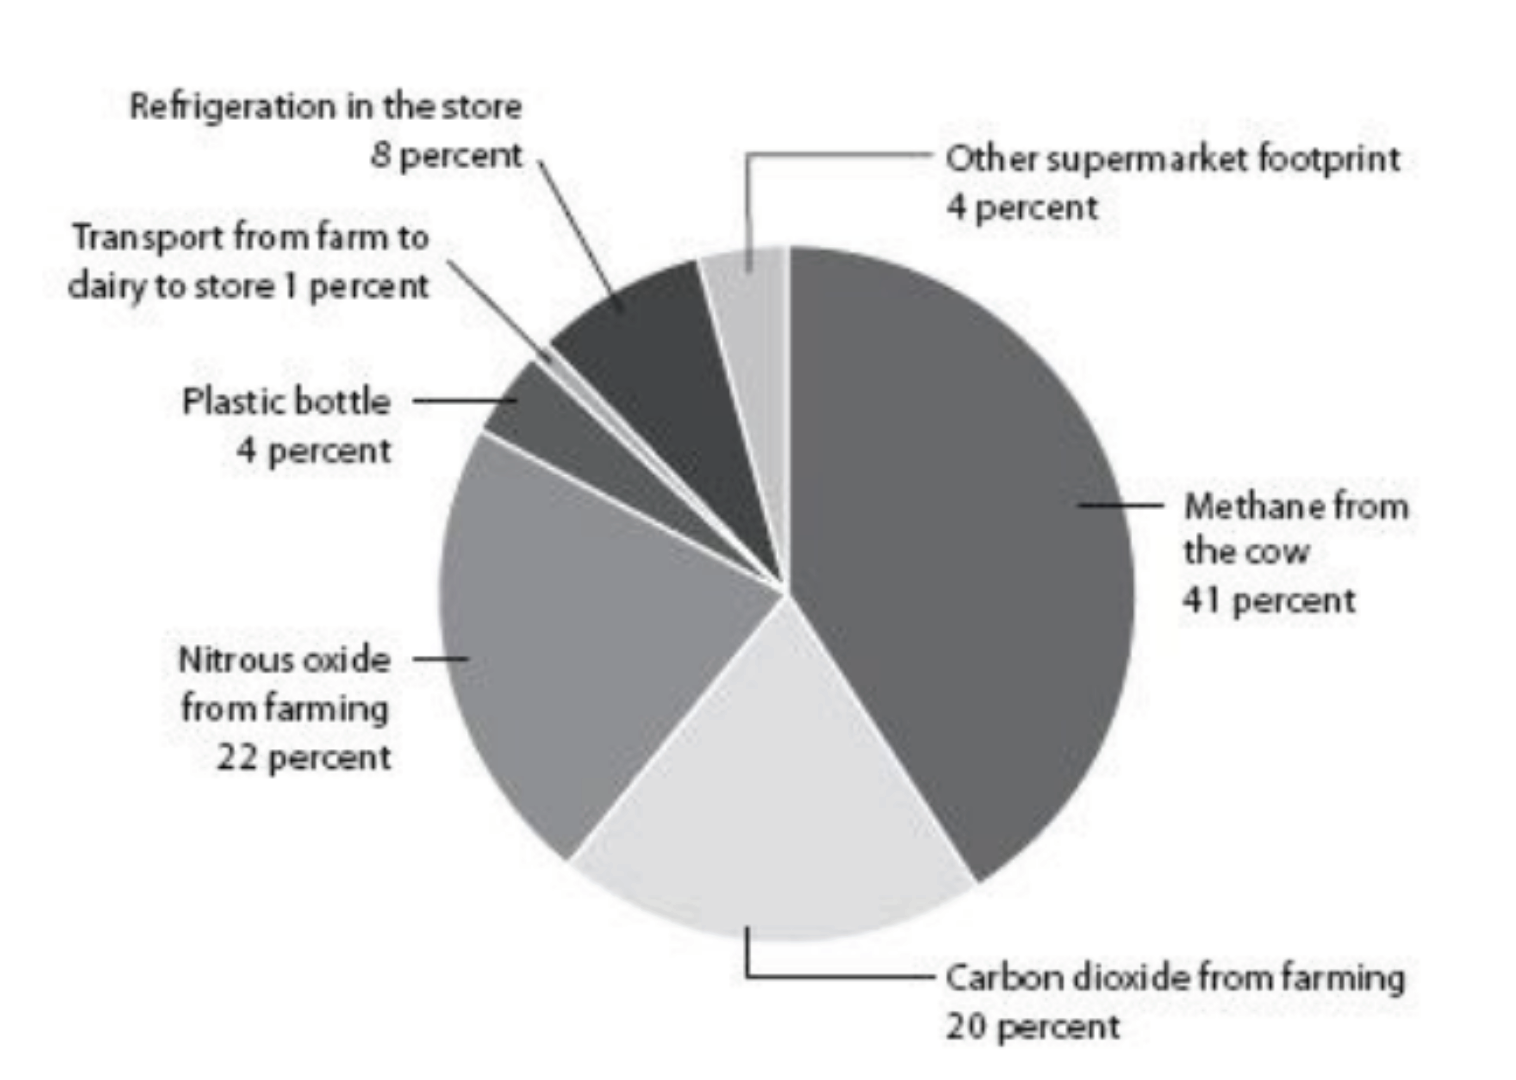 Breakdown of the carbon footprint sources of a pint of milk, from  How Bad are Bananas?  Cows are a large producer of methane gas, the most potent greenhouse gas.